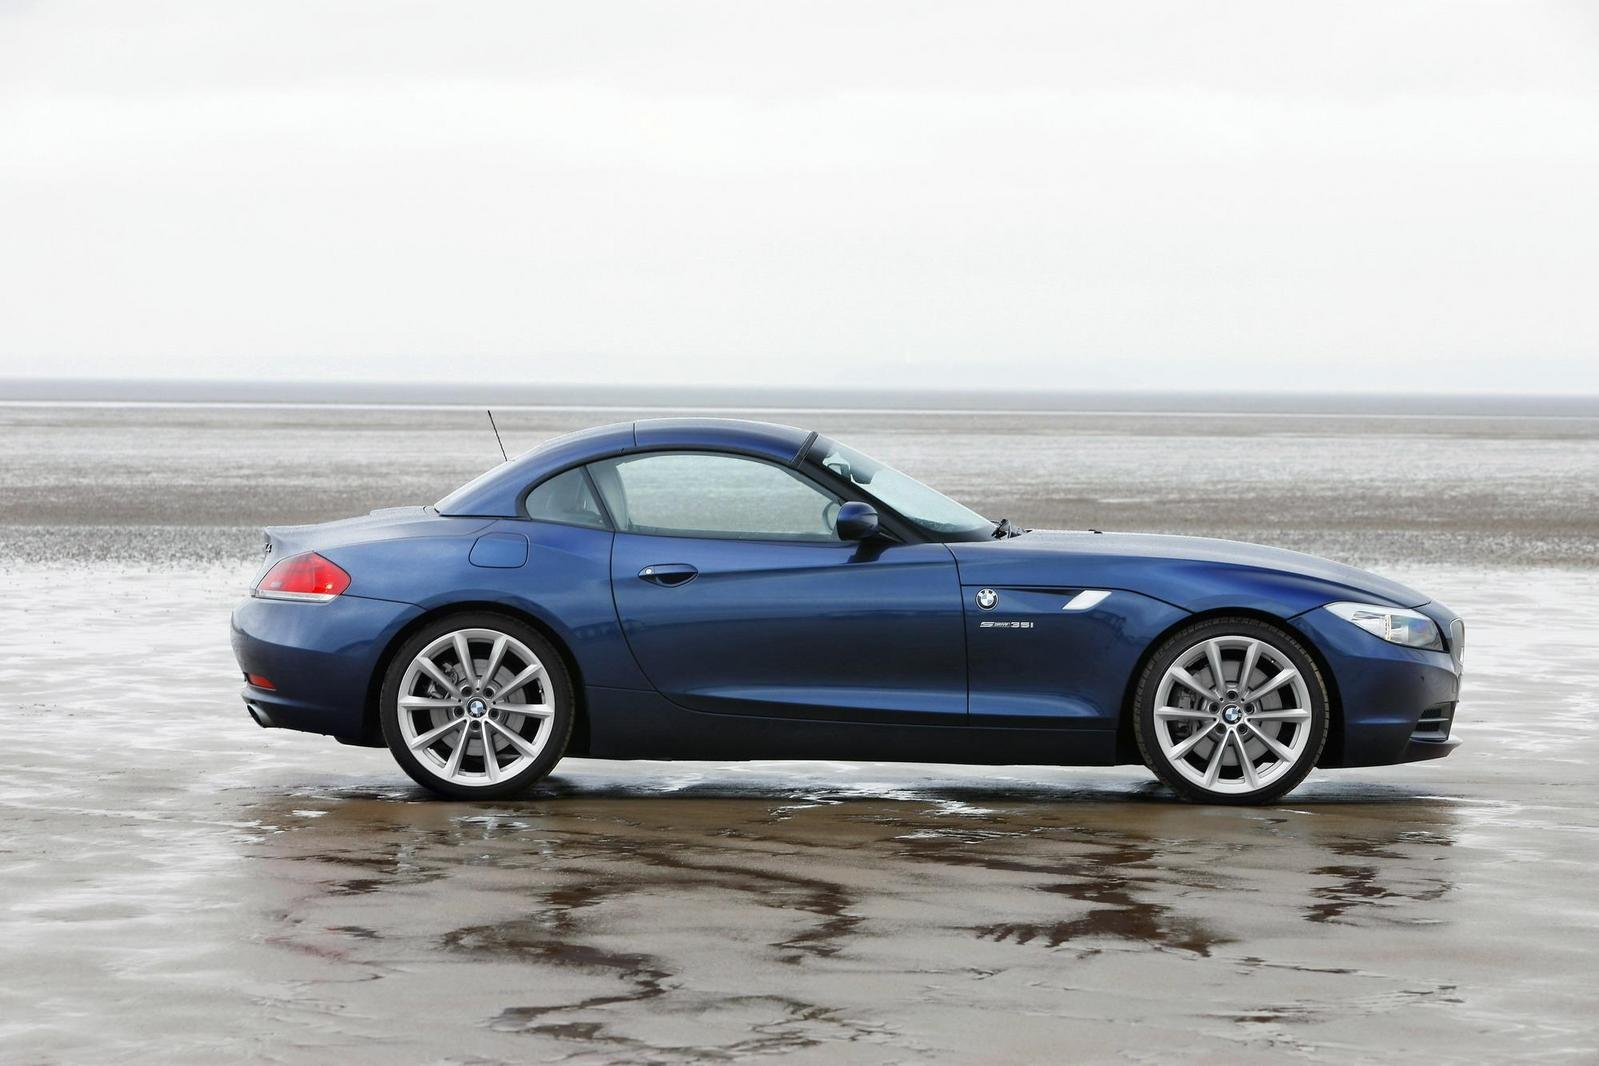 2009 bmw z4 roadster picture 299356 car review top speed. Black Bedroom Furniture Sets. Home Design Ideas